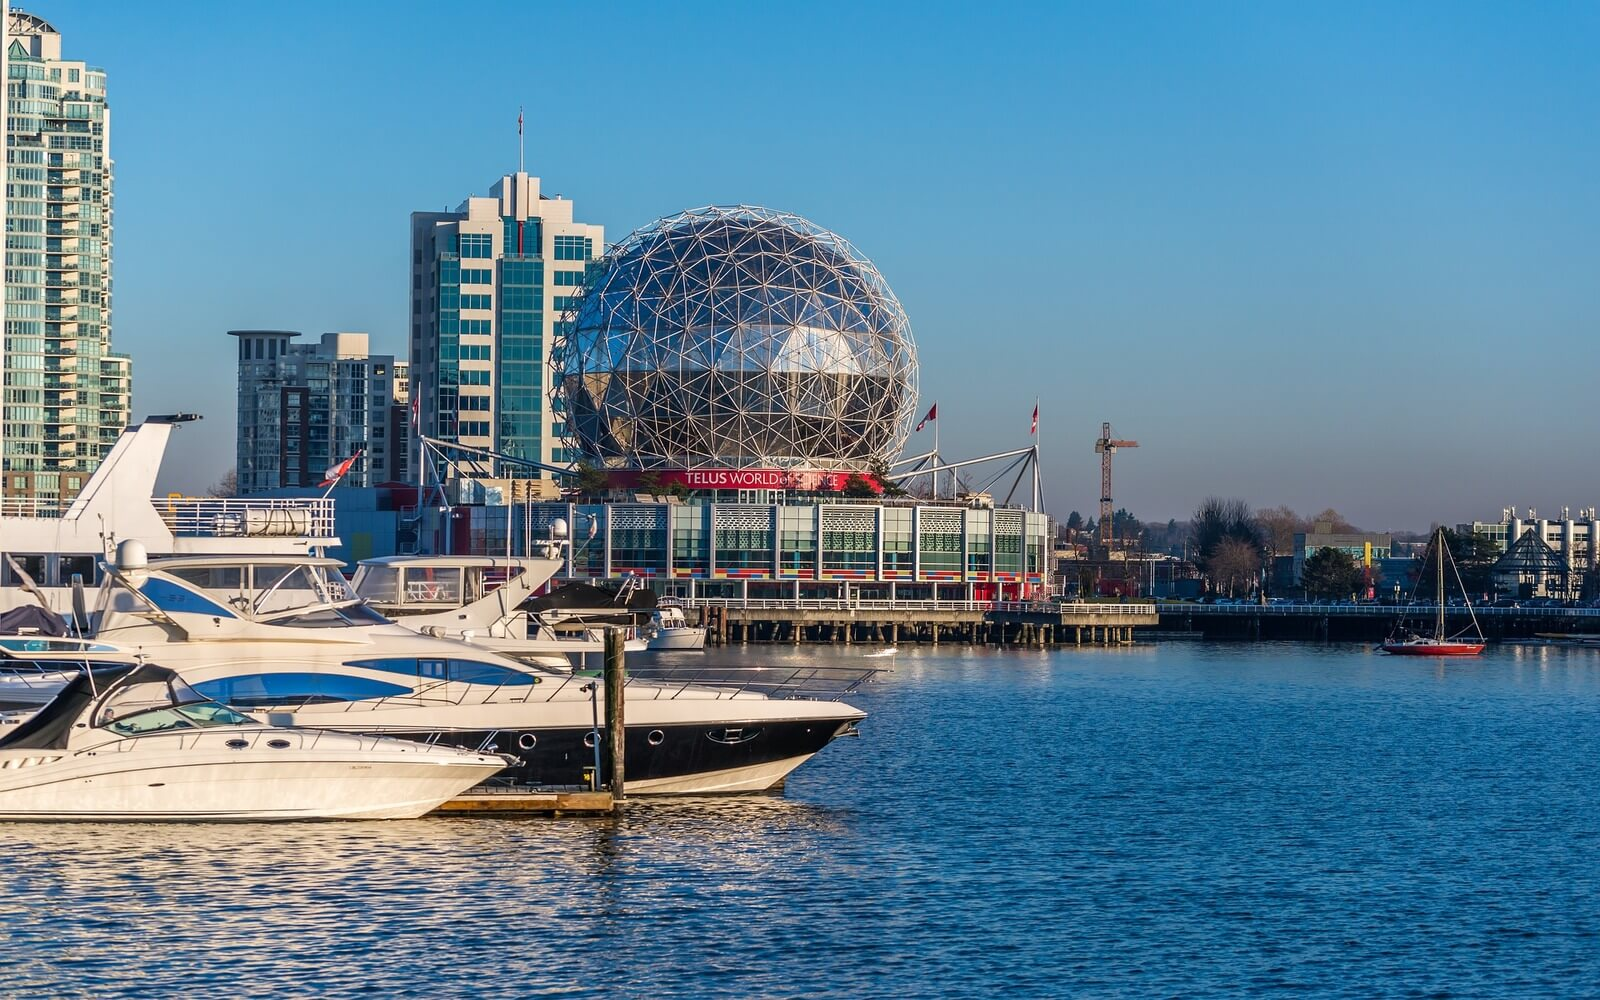 A view of Science World from the water